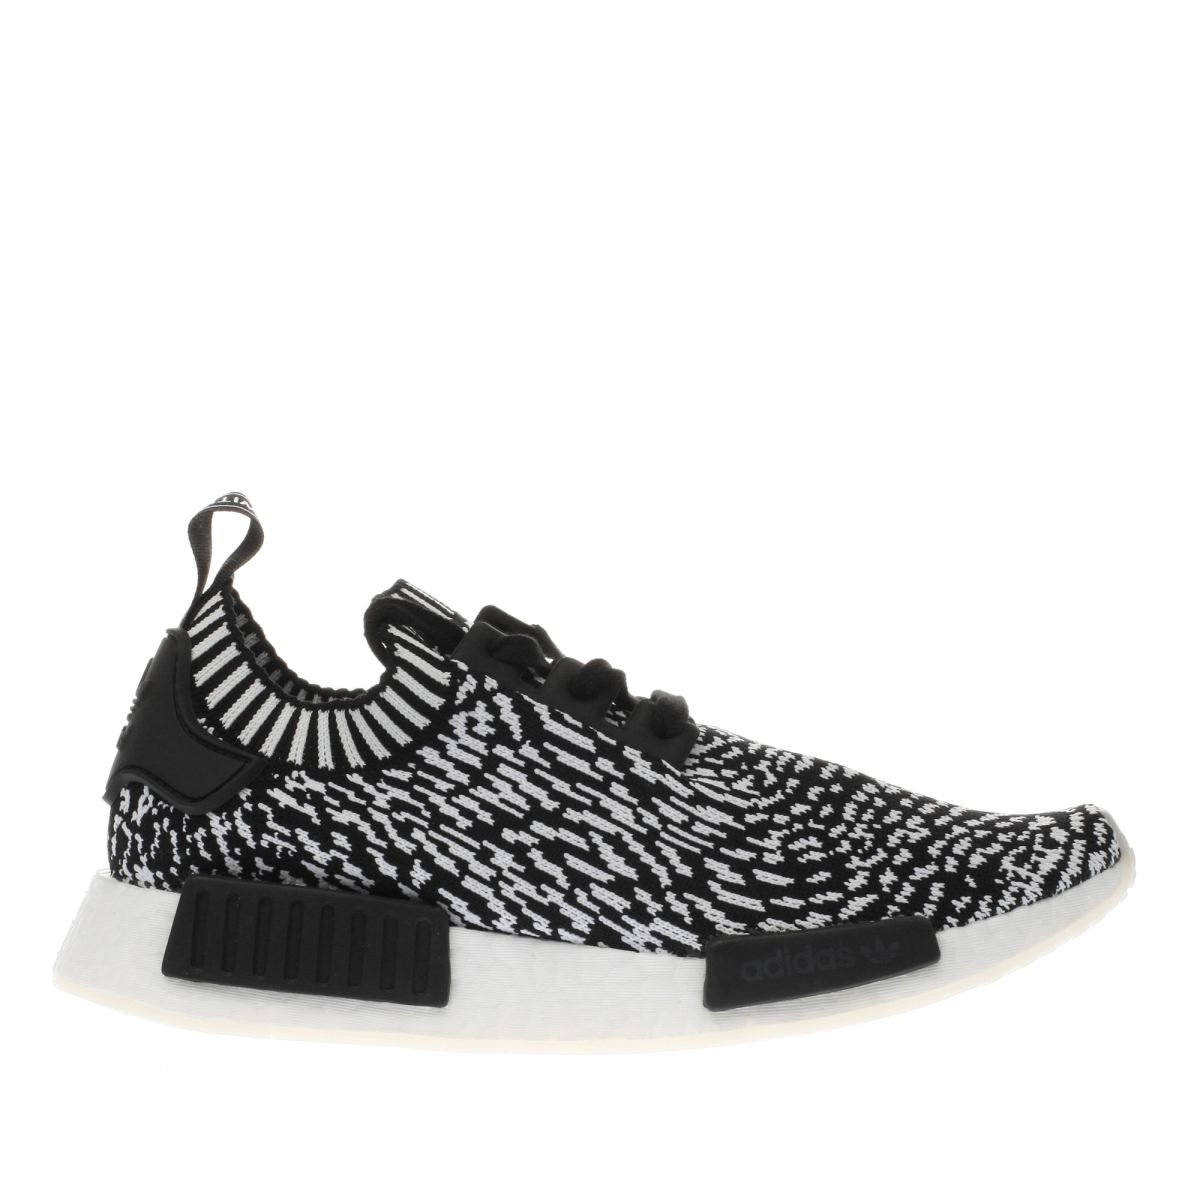 adidas black & white nmd_r1 prime knit trainers